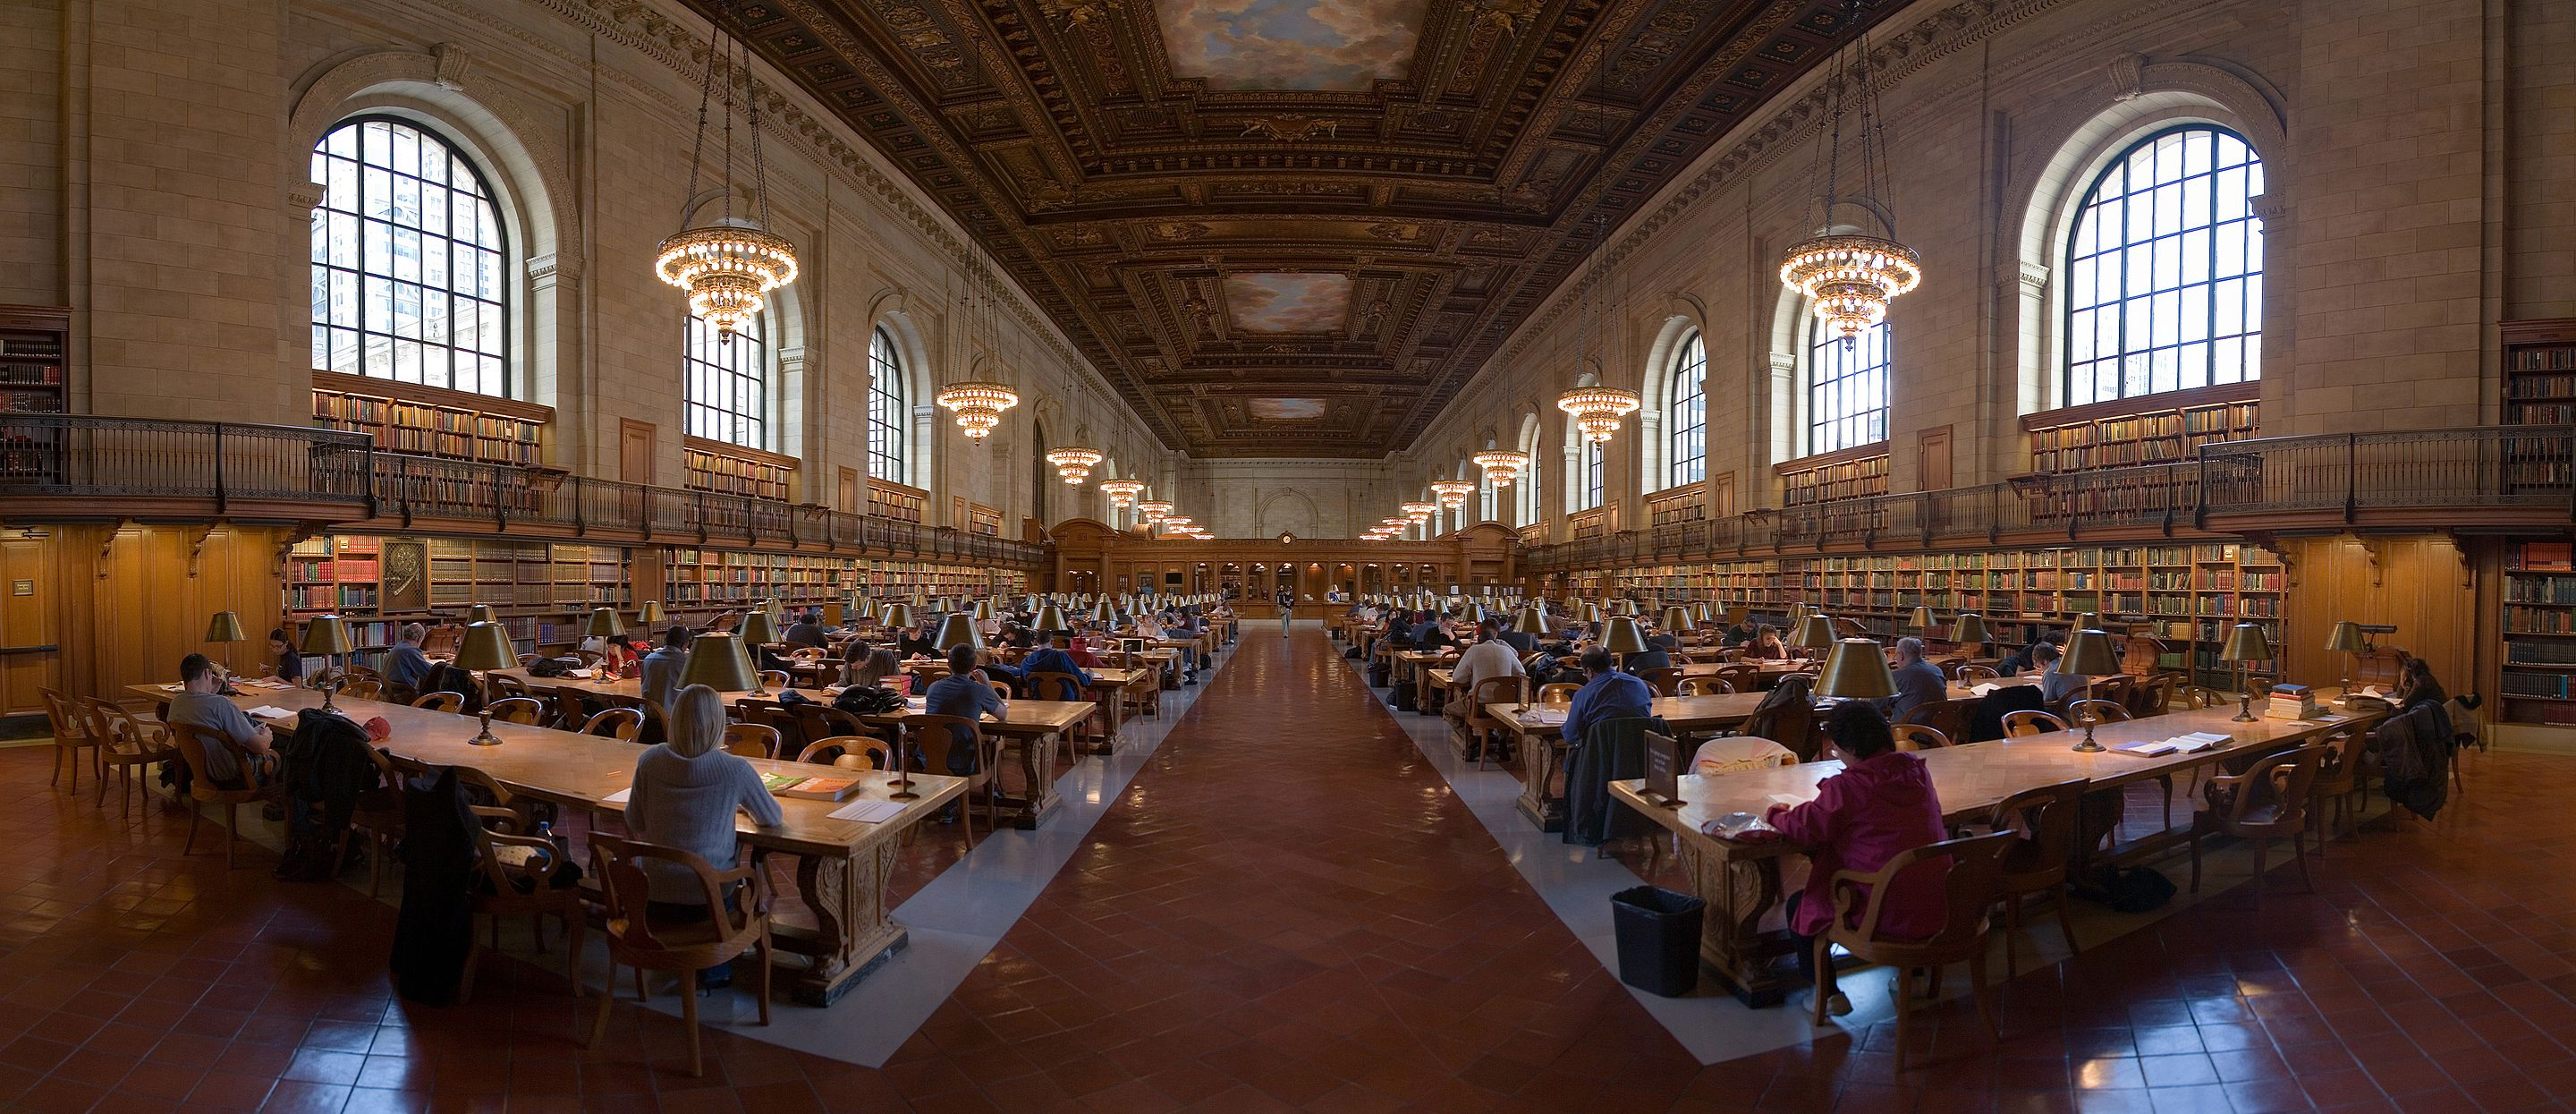 [Image: 2880px-NYC_Public_Library_Research_Room_Jan_2006.jpg]